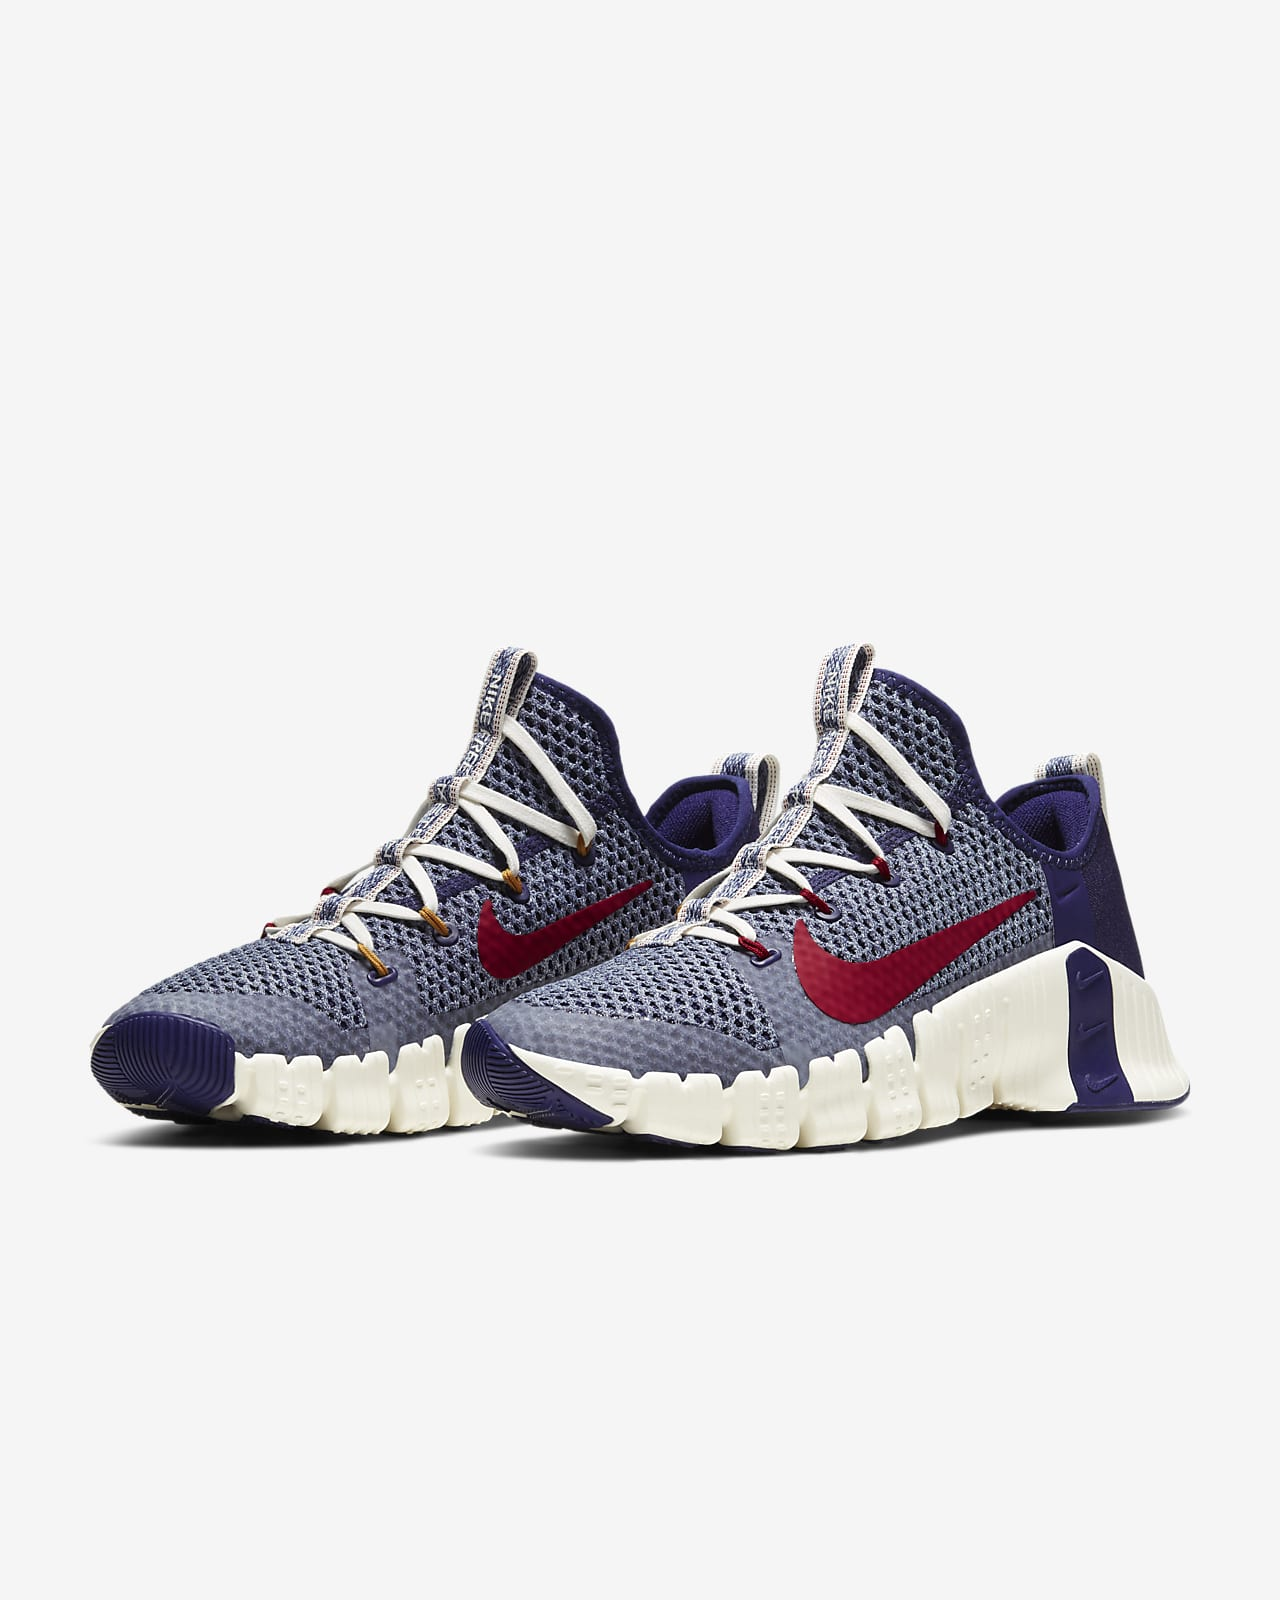 Nike Free Metcon 3 AMP Men's Training Shoe